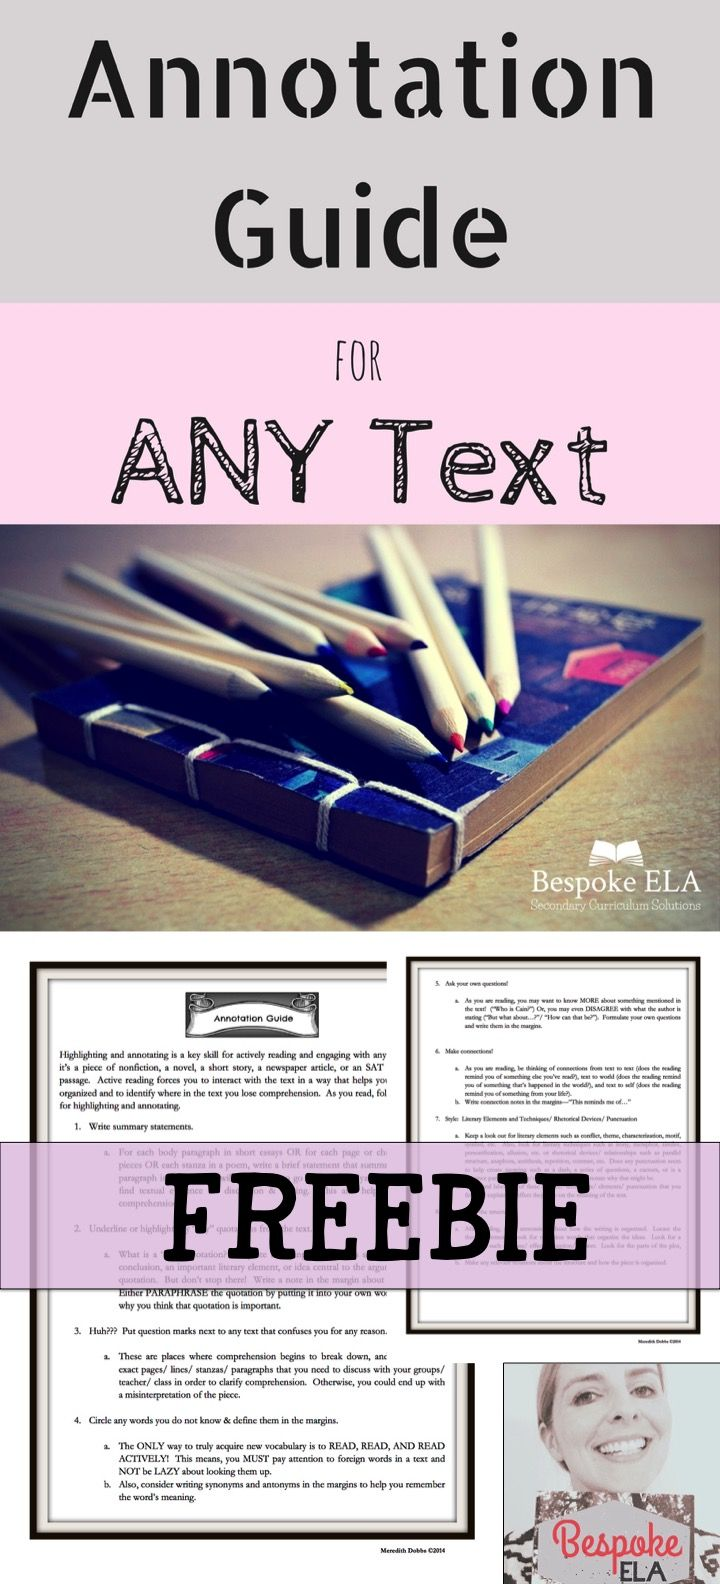 This guide instructs students on what to highlight and annotate for active reading. It includes making summary annotations, circling unfamiliar vocabulary terms, highlighting/ underlining key quotations, and making text-to-text/ text-to-word/ text-to-self connections. Highlighting and annotating is a key skill for truly interacting with any text, and this guide is a great resource for your students to use as they practice this skill.  Middle School and High School English Language Arts